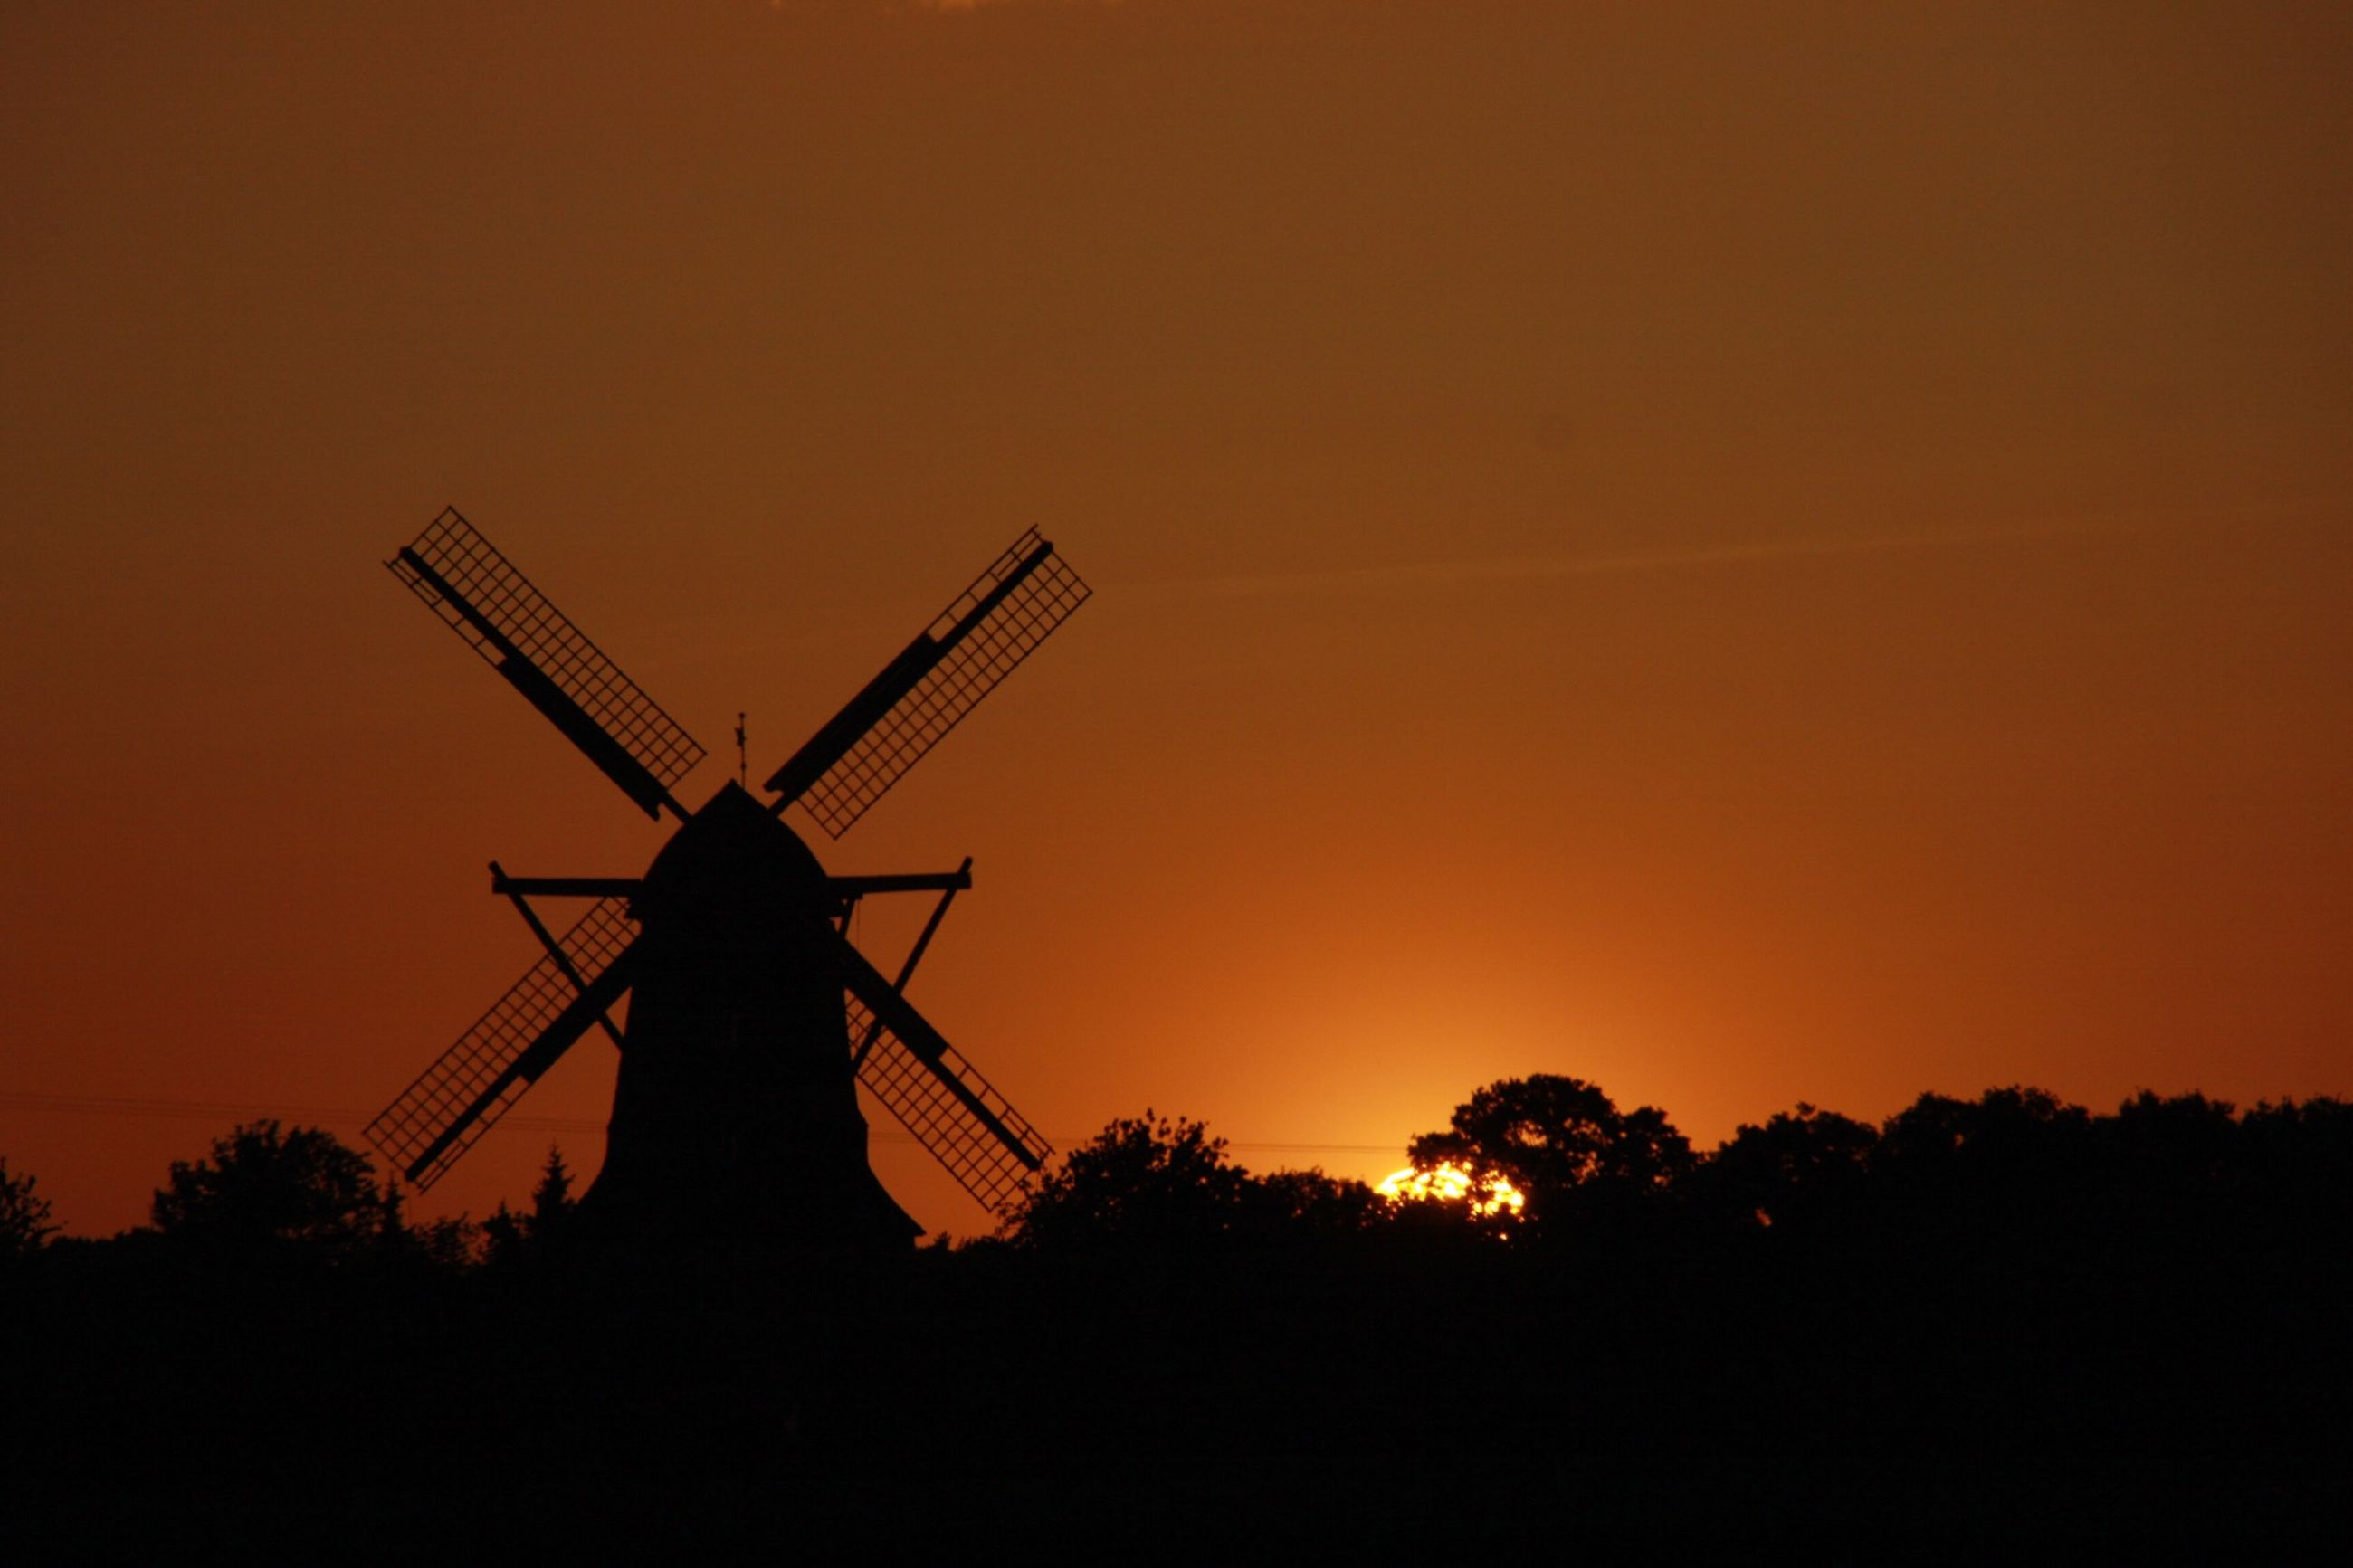 alternative energy, sunset, environmental conservation, wind turbine, wind power, windmill, fuel and power generation, renewable energy, silhouette, traditional windmill, orange color, crane - construction machinery, technology, development, construction site, industry, rural scene, clear sky, crane, sky